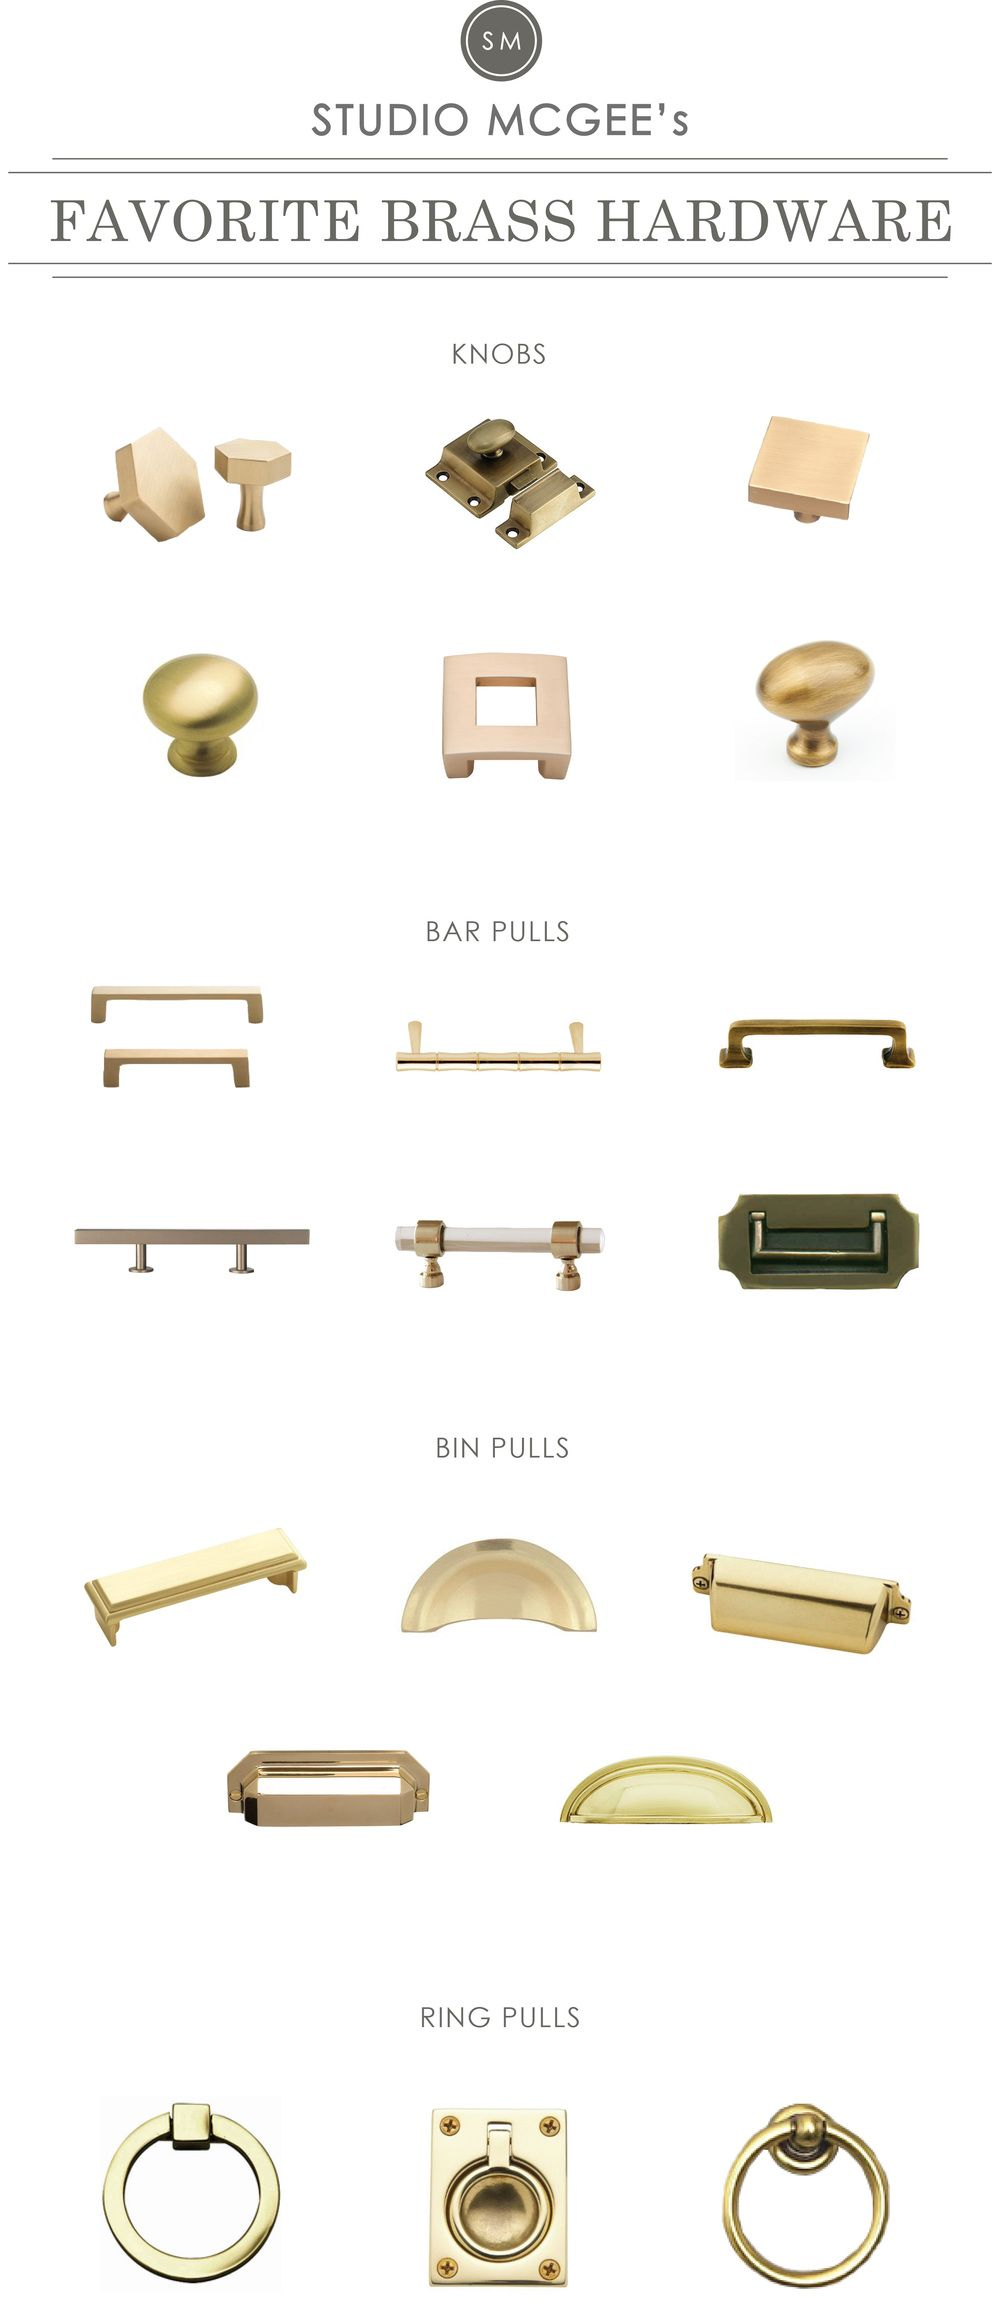 Cabinet Pull Knobs A Roundup Of Our Favorite Brass Hardware Grey Kitchen Hardware